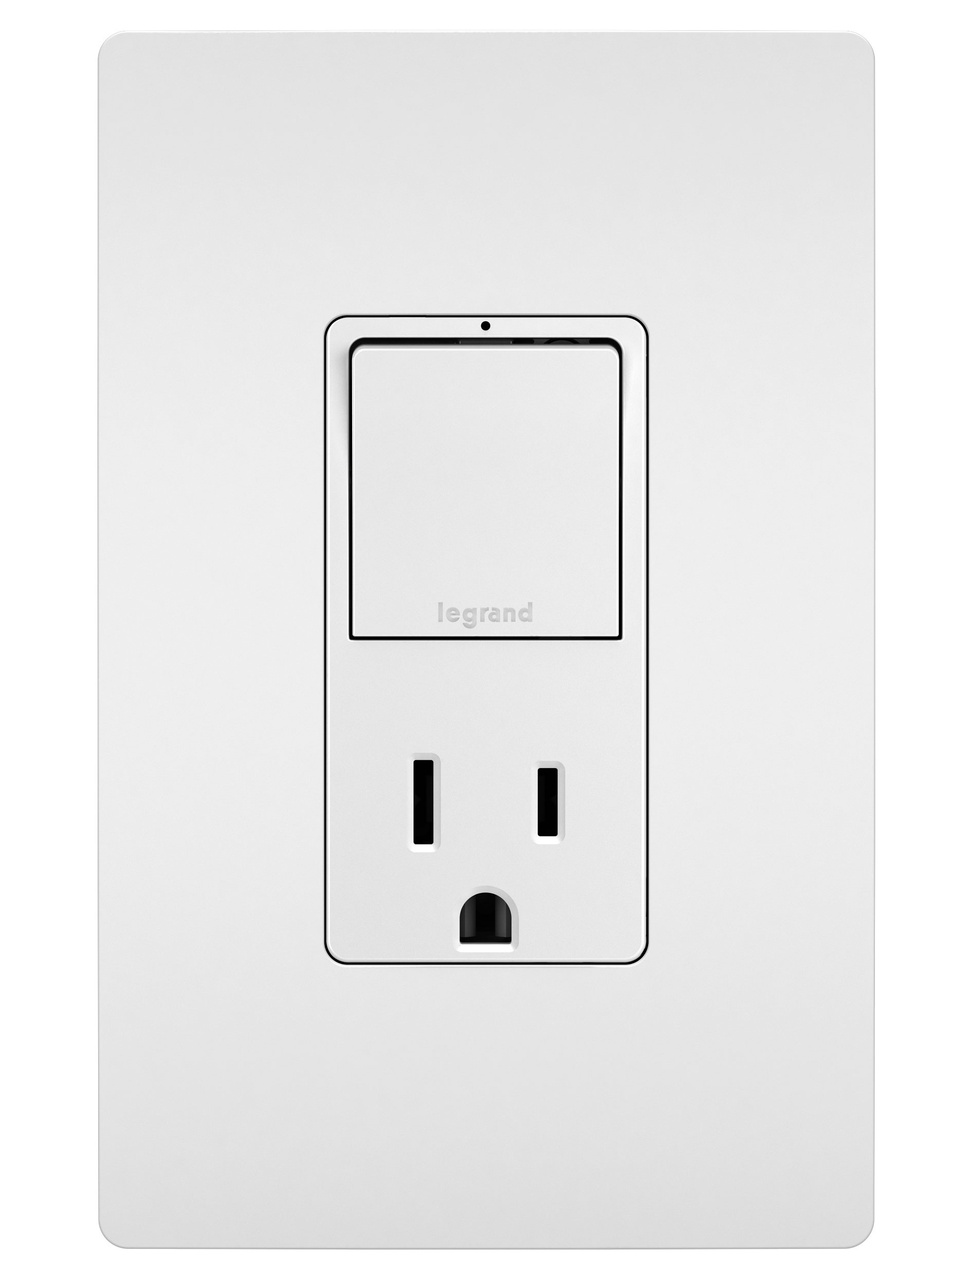 medium resolution of radiant rcd38trw combo single pole 3 way switch 15a tr outlet white legrand